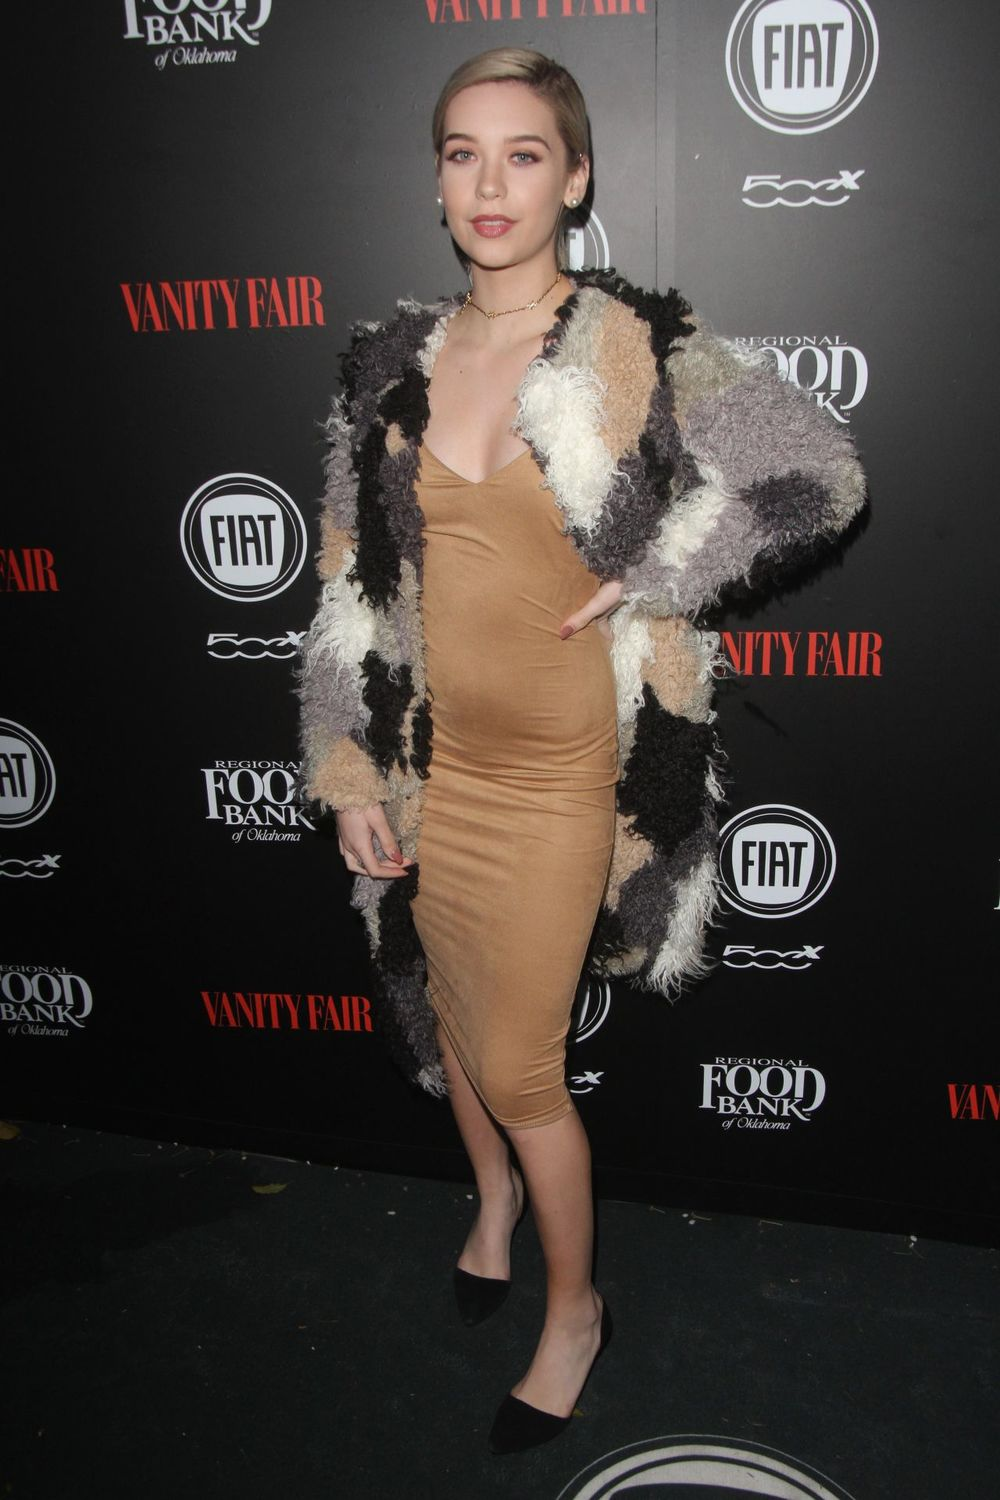 amanda-steele-vanity-fair-and-fiat-young-hollywood-celebration-in-los-angeles-2-23-2016-1.jpg